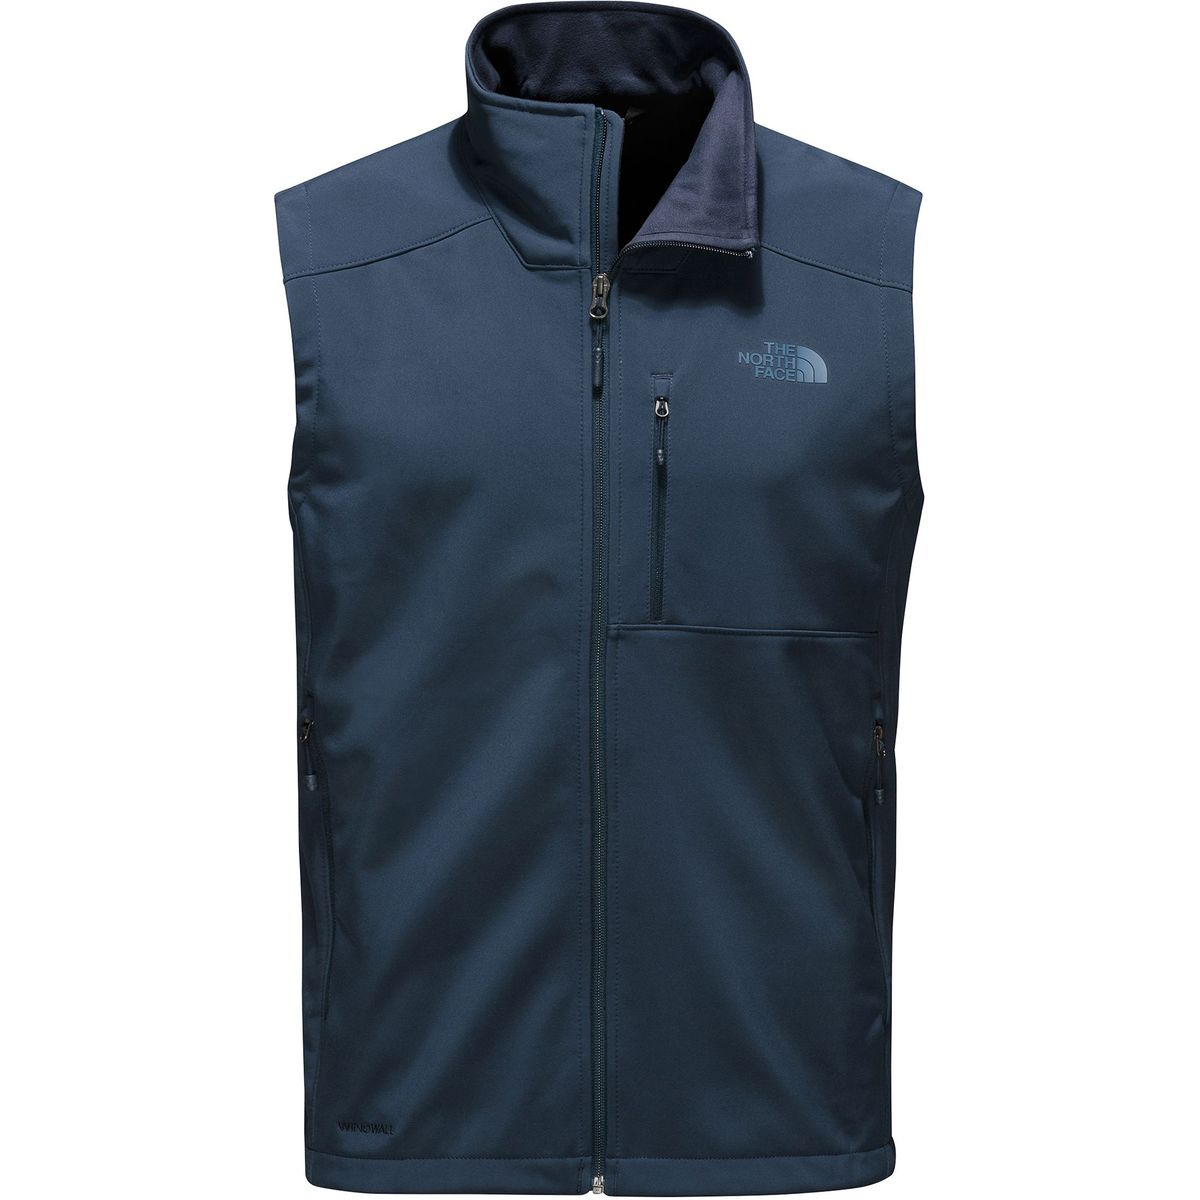 The North Face Apex Bionic 2 Softshell Vest - Men